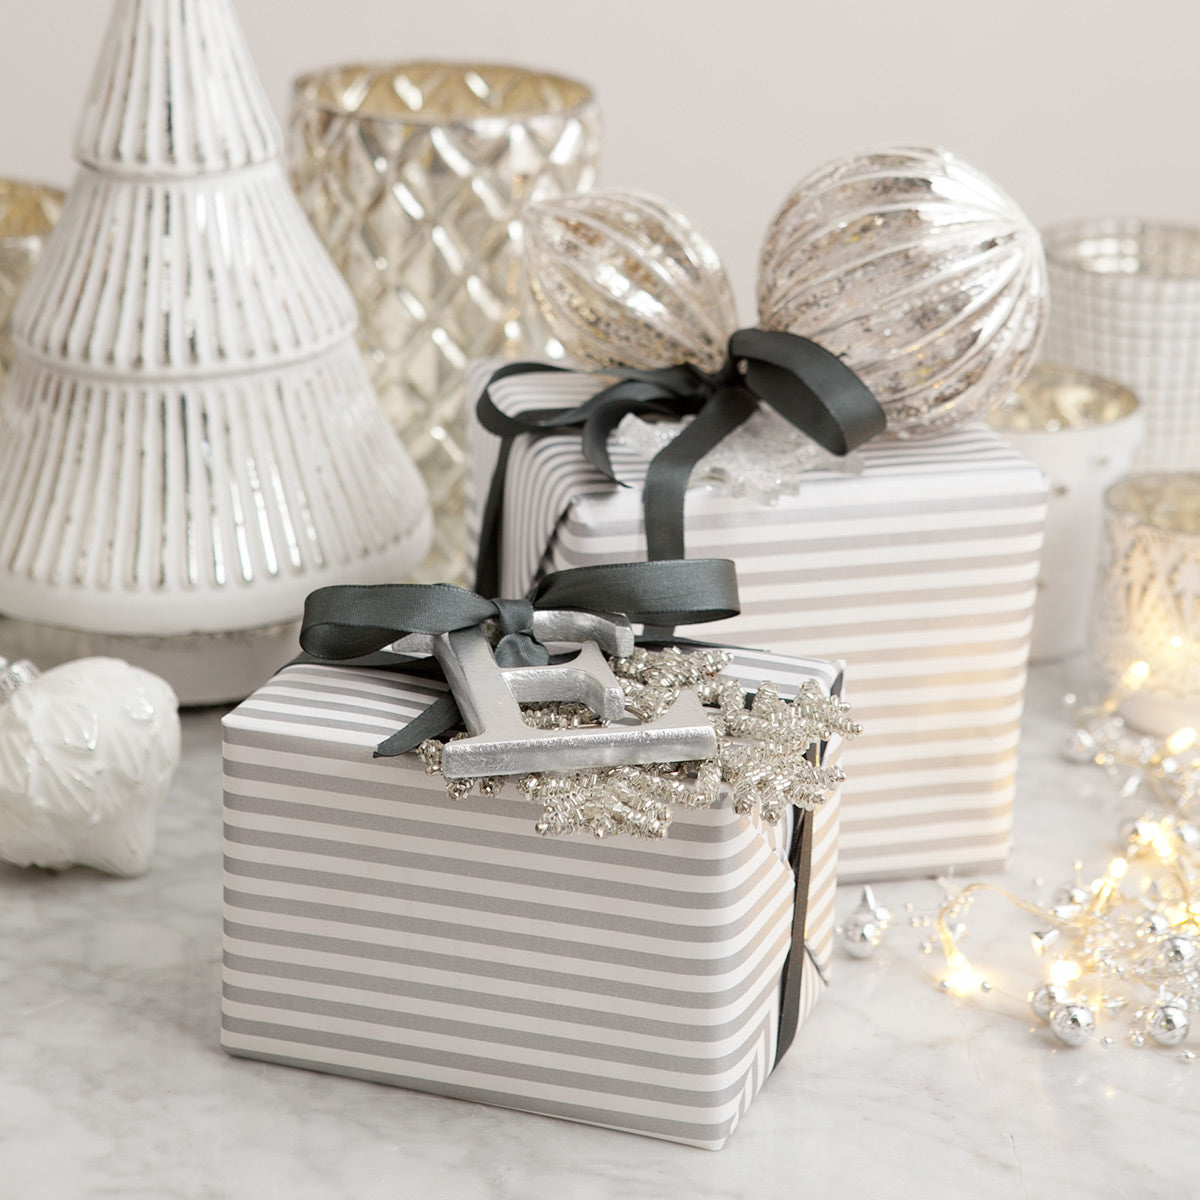 Gifts wrapped in silver and white with glass decorations.